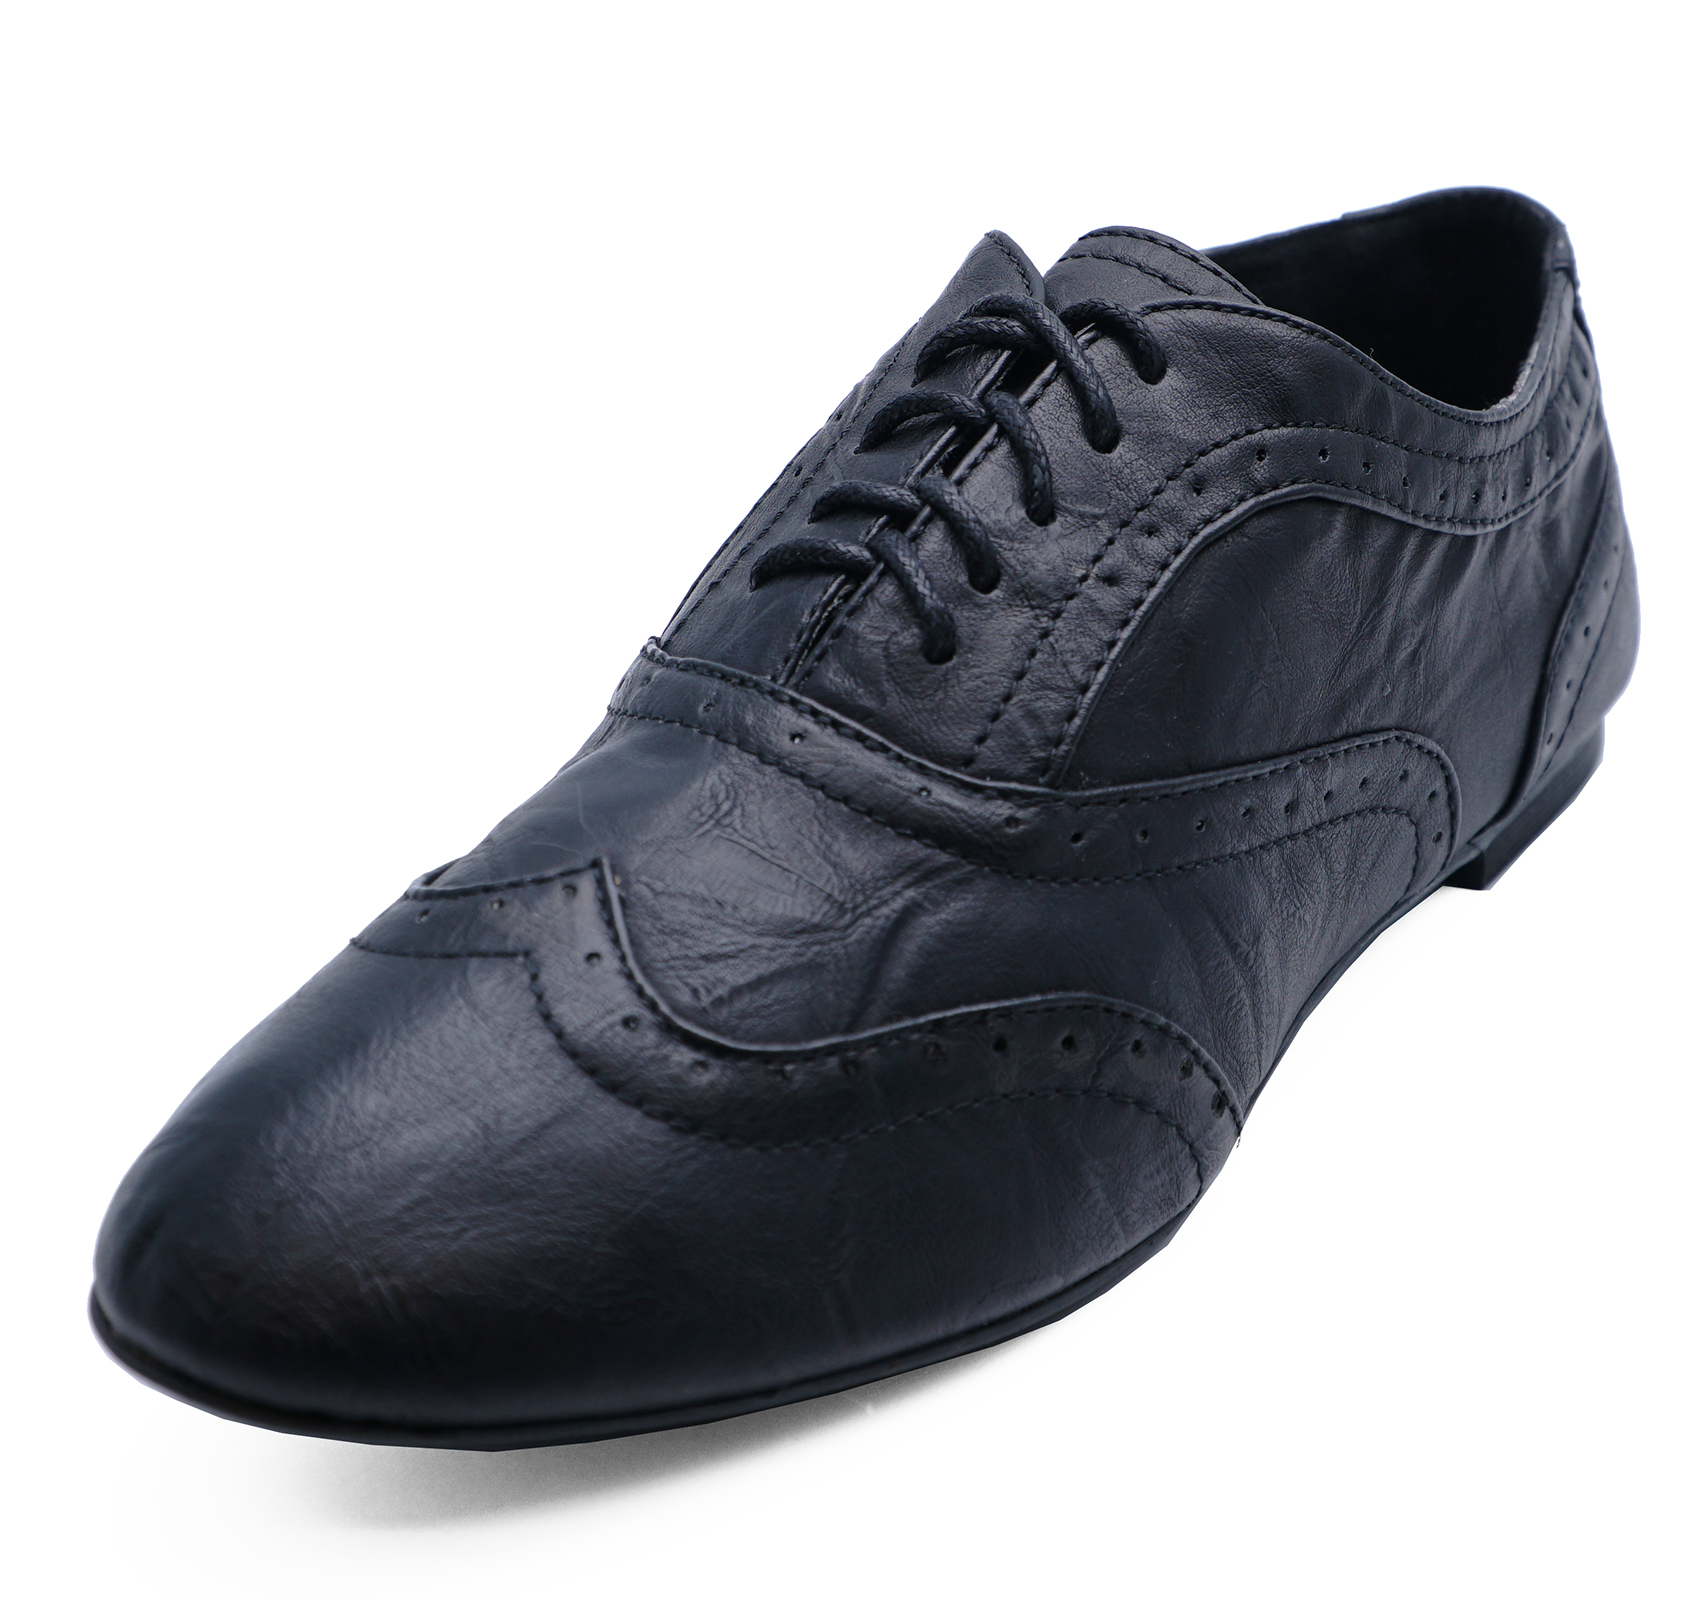 LADIES BLACK SLIP-ON SMART CASUAL WORK LOAFERS COMFY BROGUES SHOES SIZES 3-8